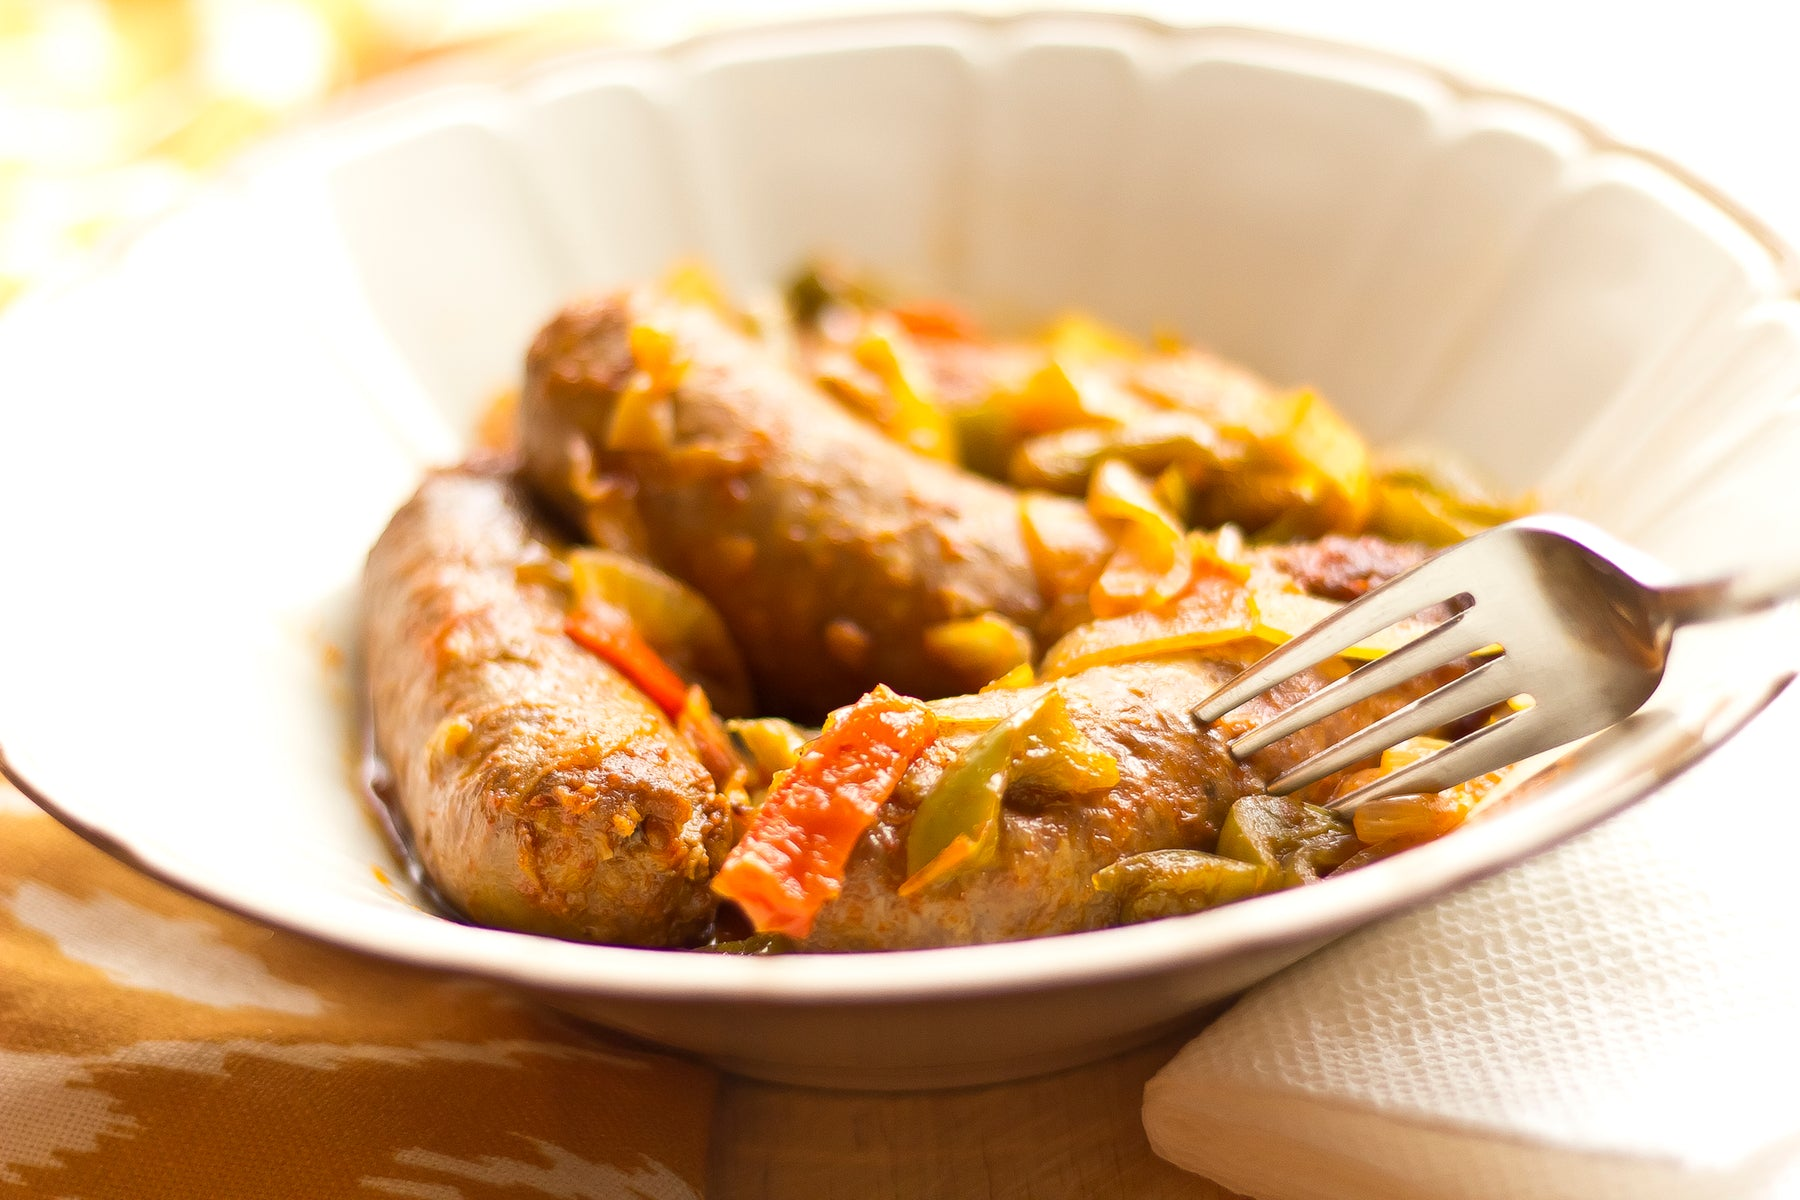 Keto Sweet and Spicy Skillet Sausage and Peppers